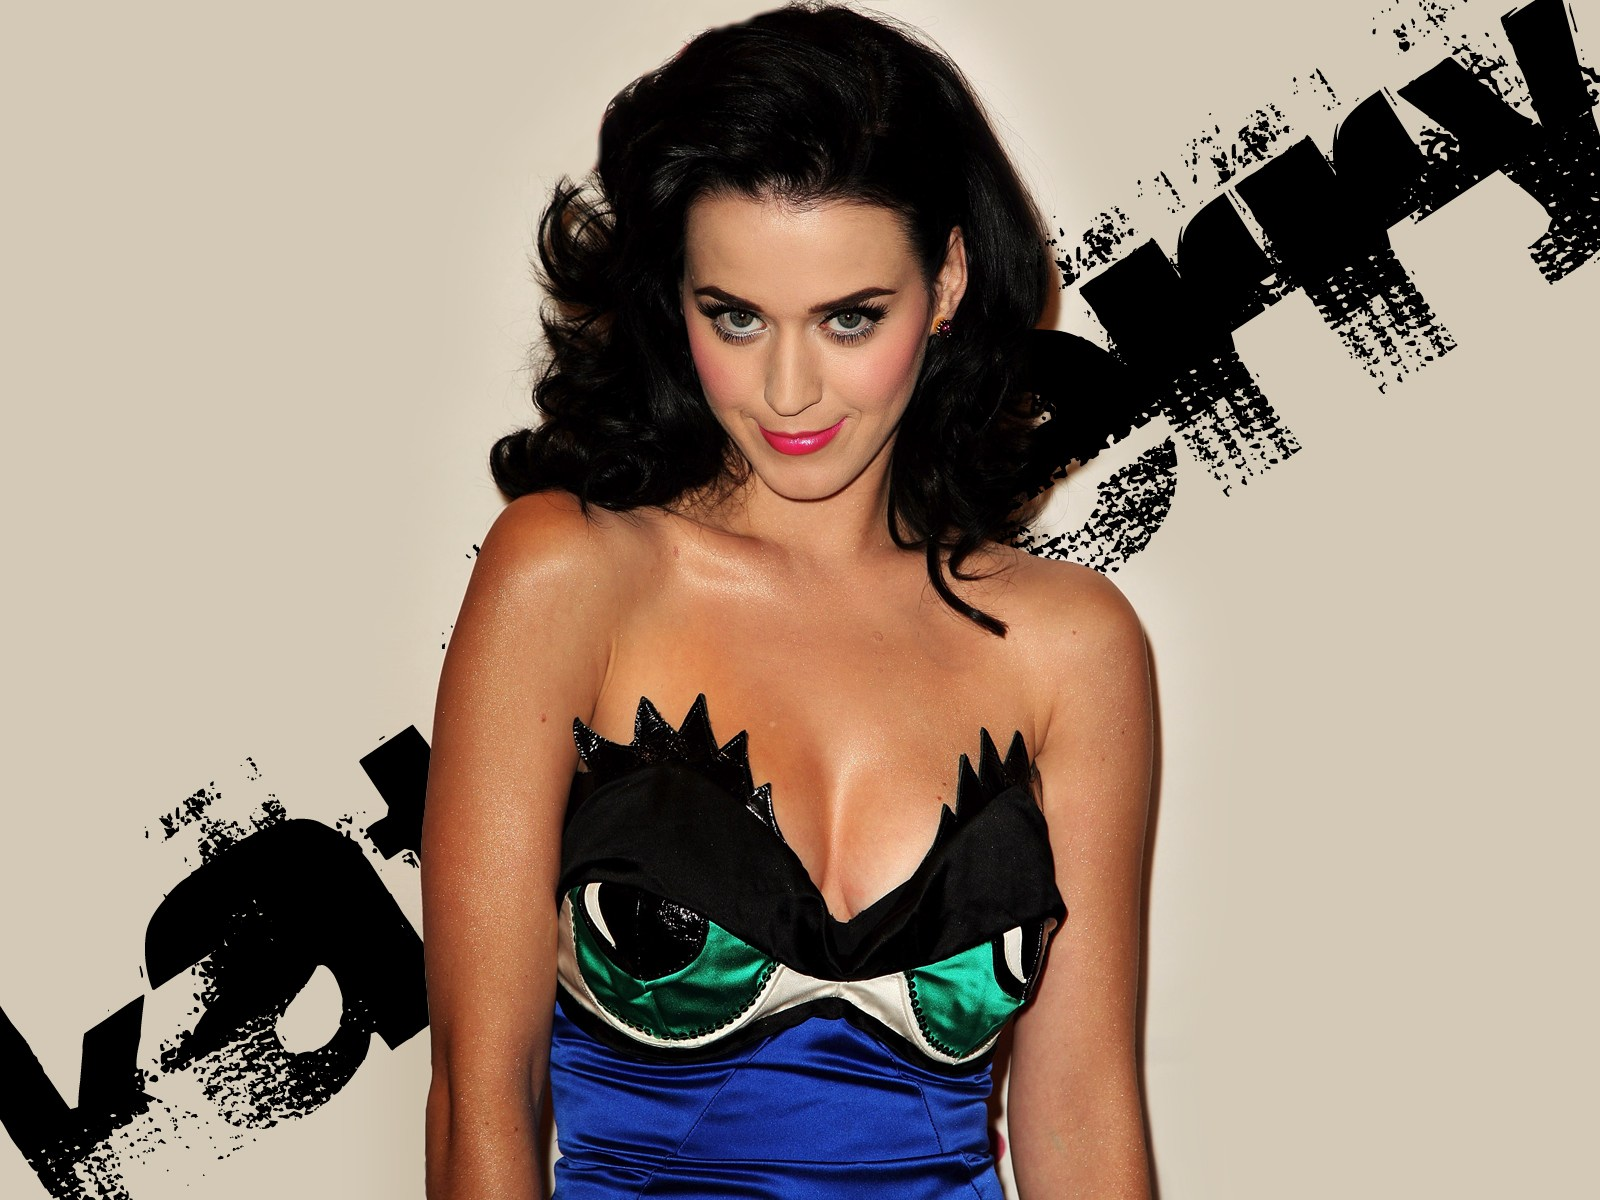 Katy Perry Boob Size